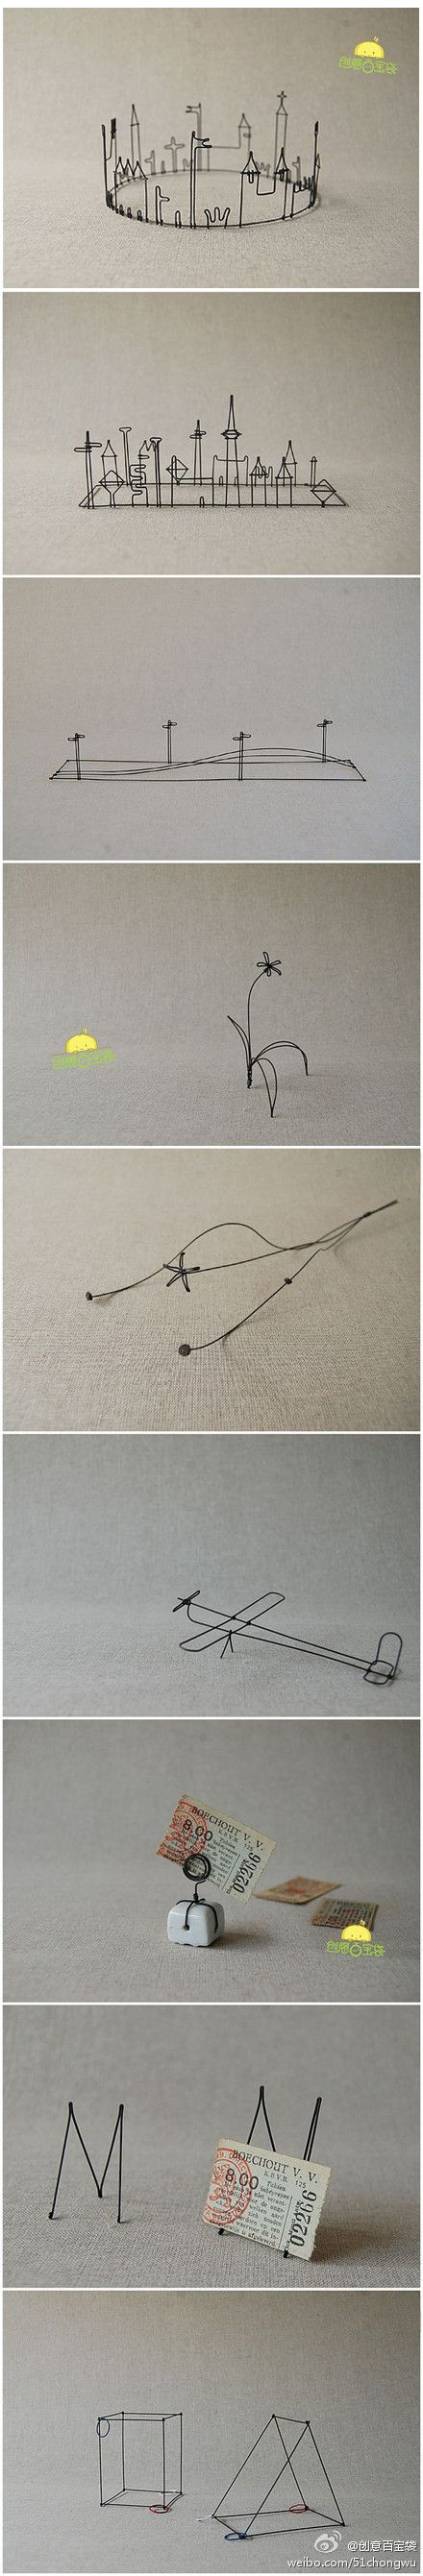 love these, really wanna try making one of my drawings into a wire sculpture